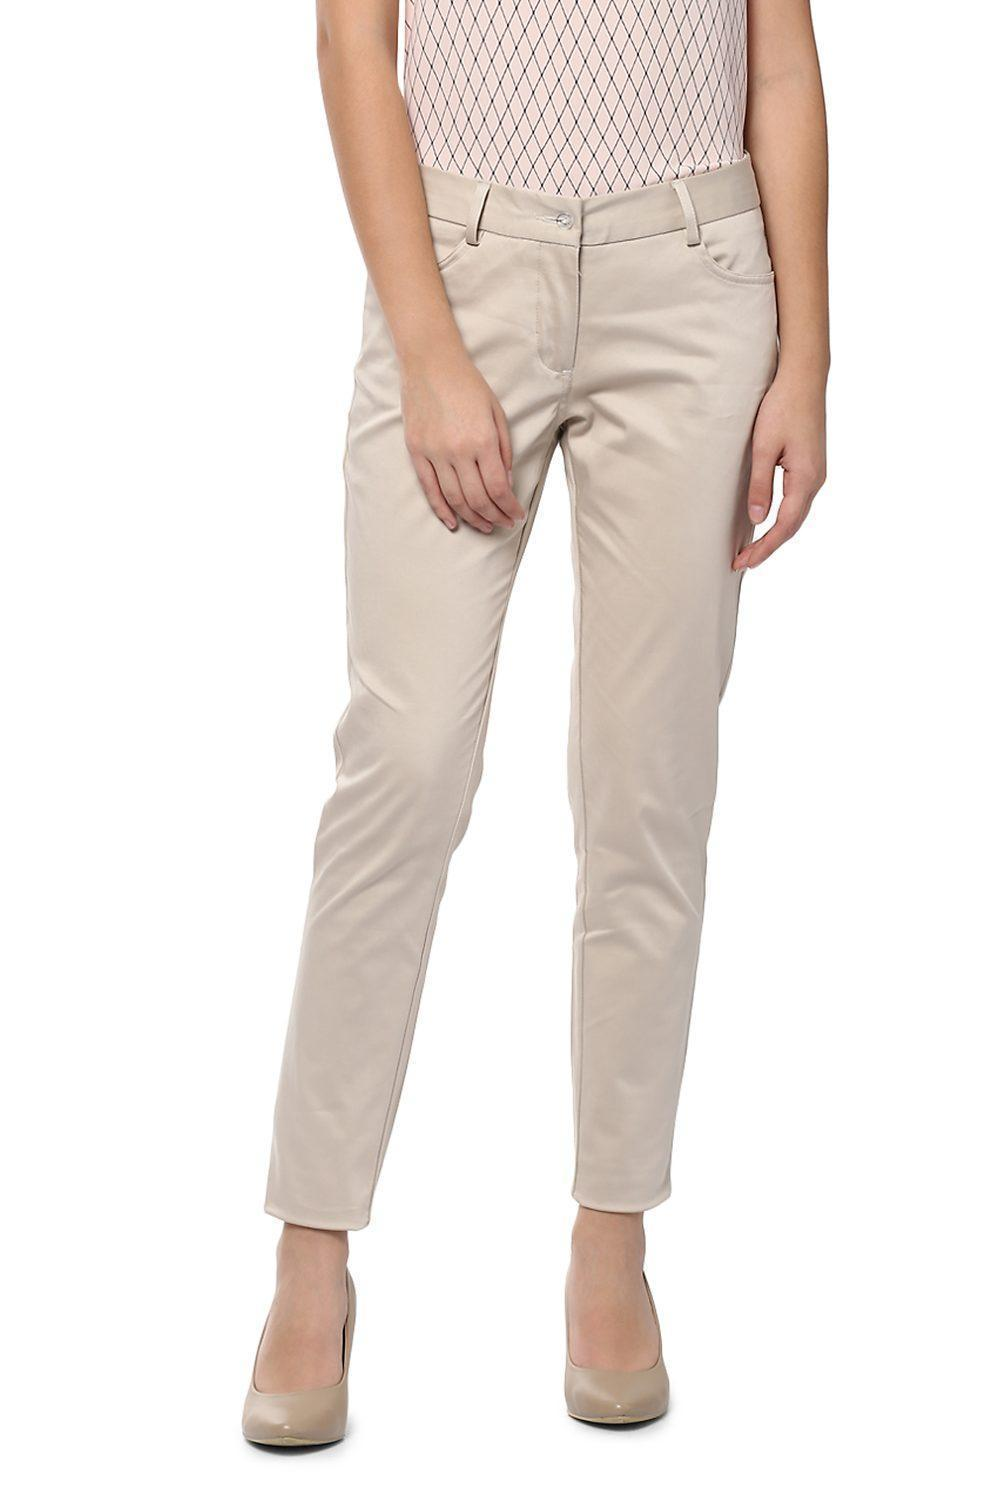 2089fffc8cbf69 Solly Trousers & Leggings, Allen Solly Beige Trousers for Women at  Allensolly.com